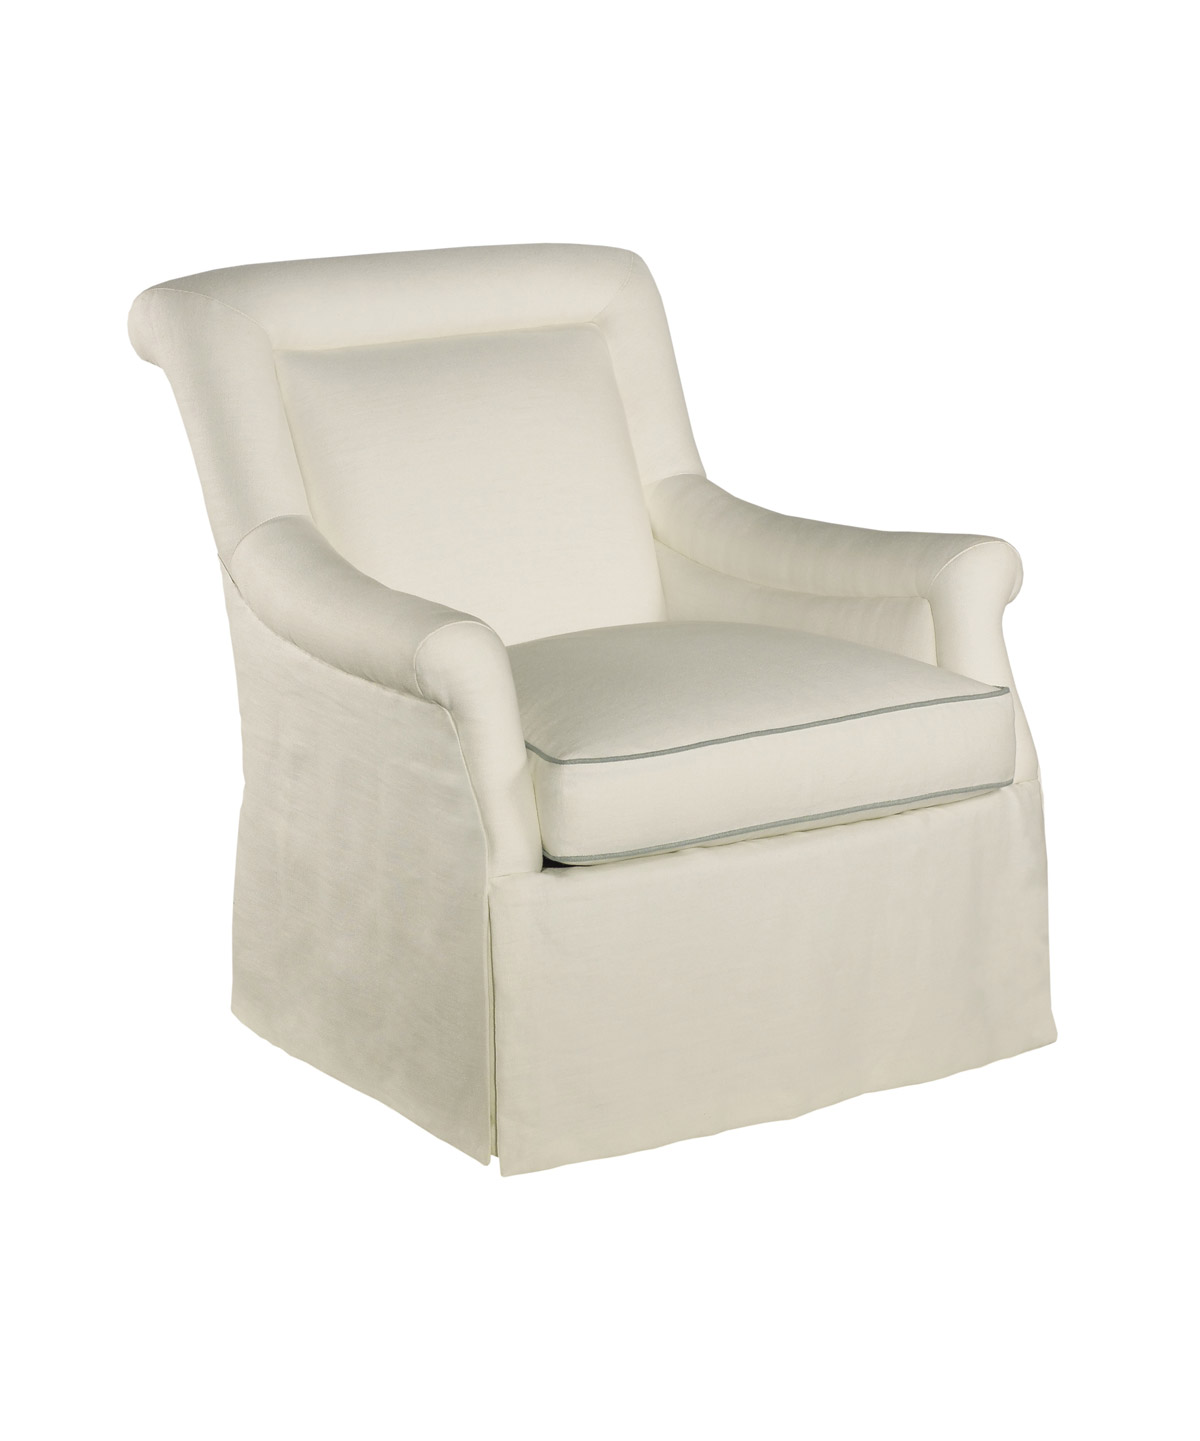 March Lounge Chair